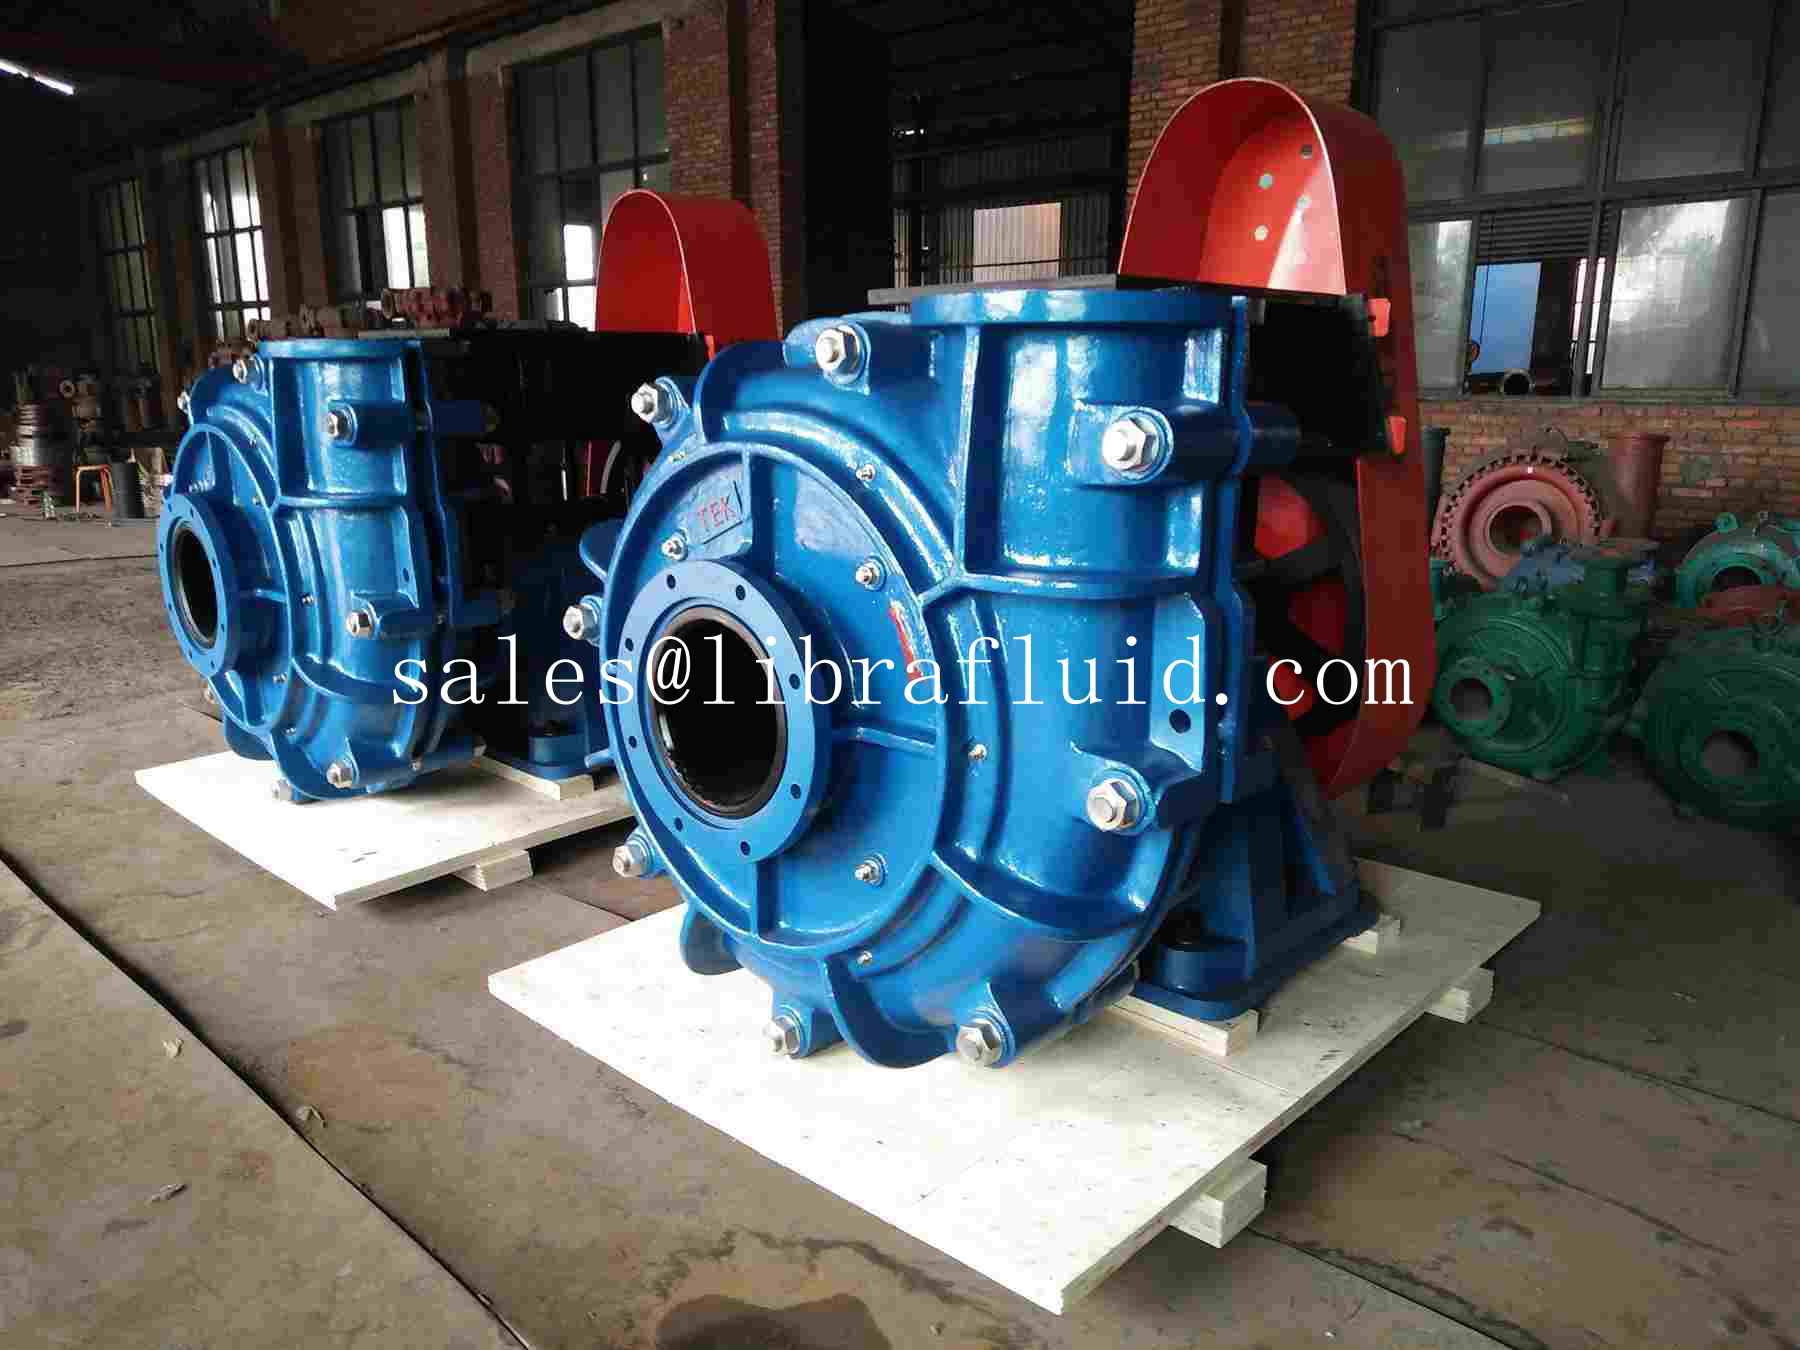 12x10 rubber pumps send to client